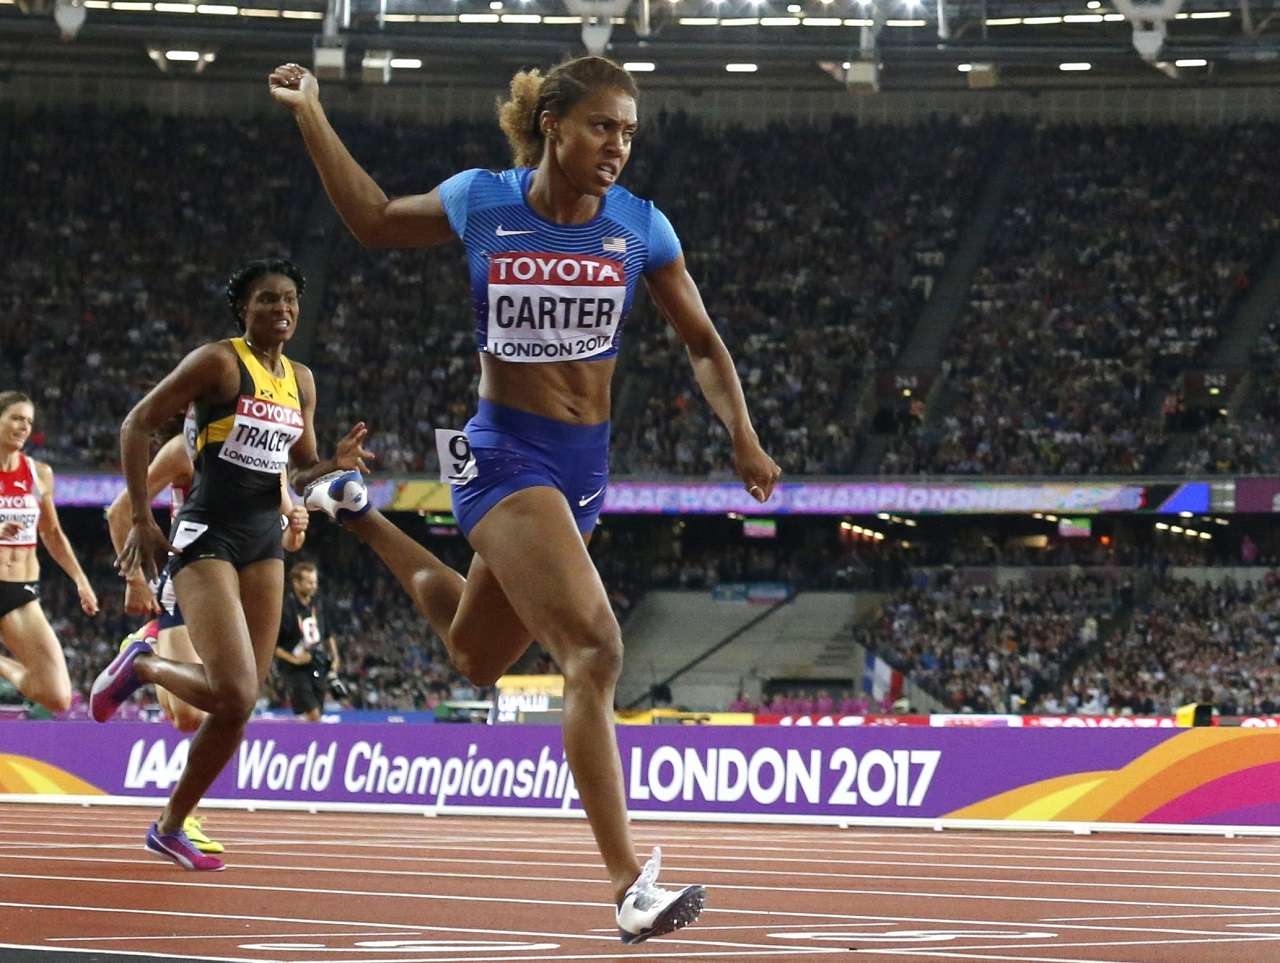 United States' Kori Carter crosses the line to win gold in the women's 400m hurdles final in London on Thursday. Jamaican Ristananna Tracey, behind, won the bronze.